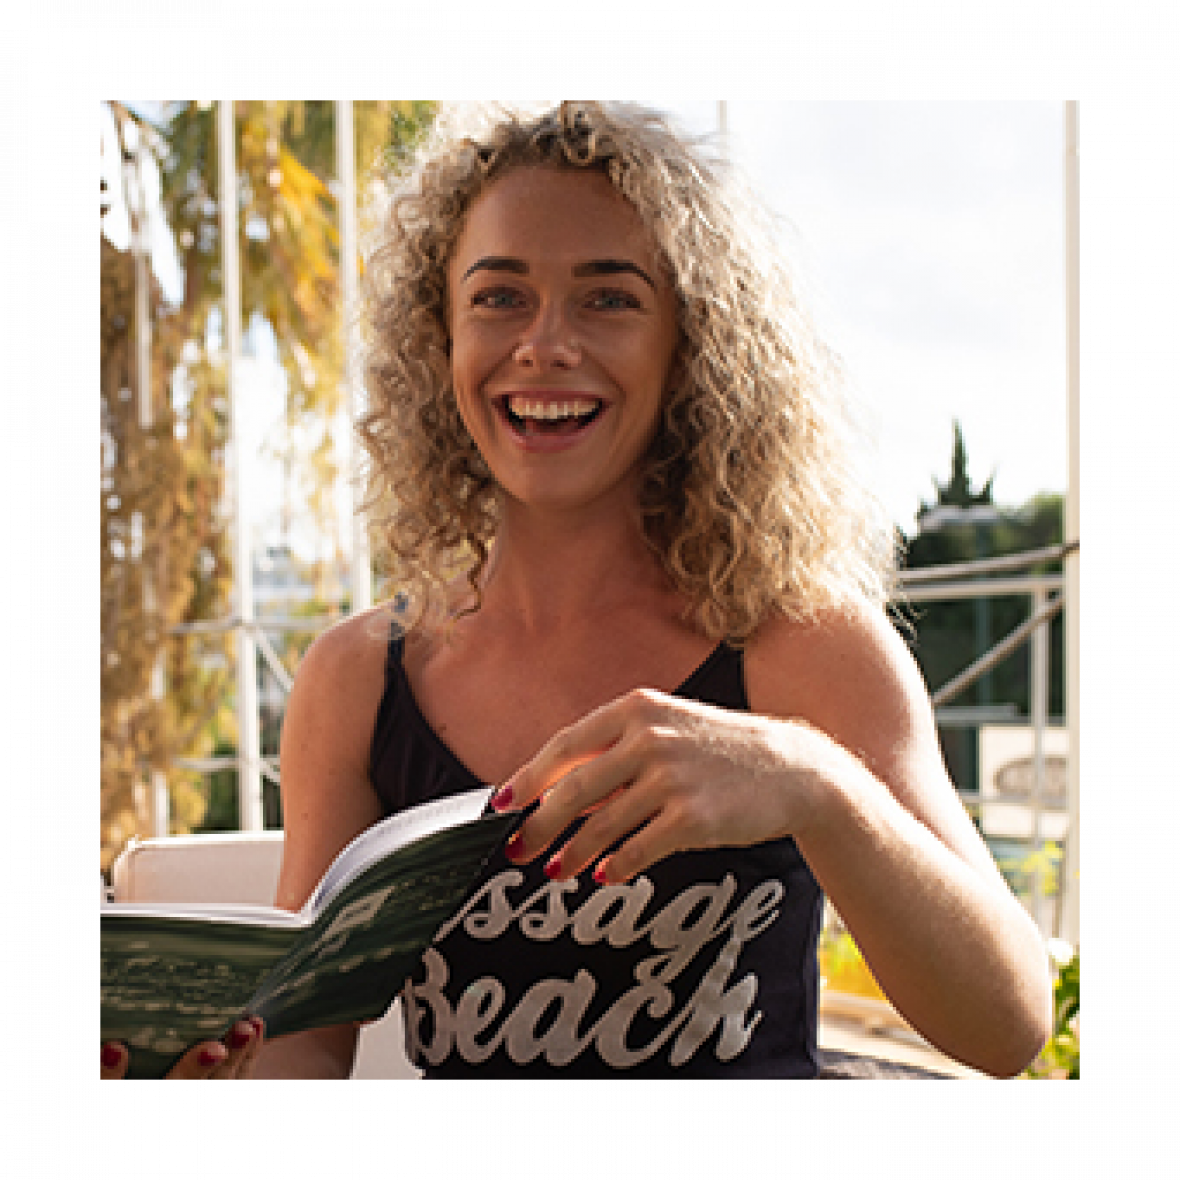 Jemma | Massage Beach Therapist